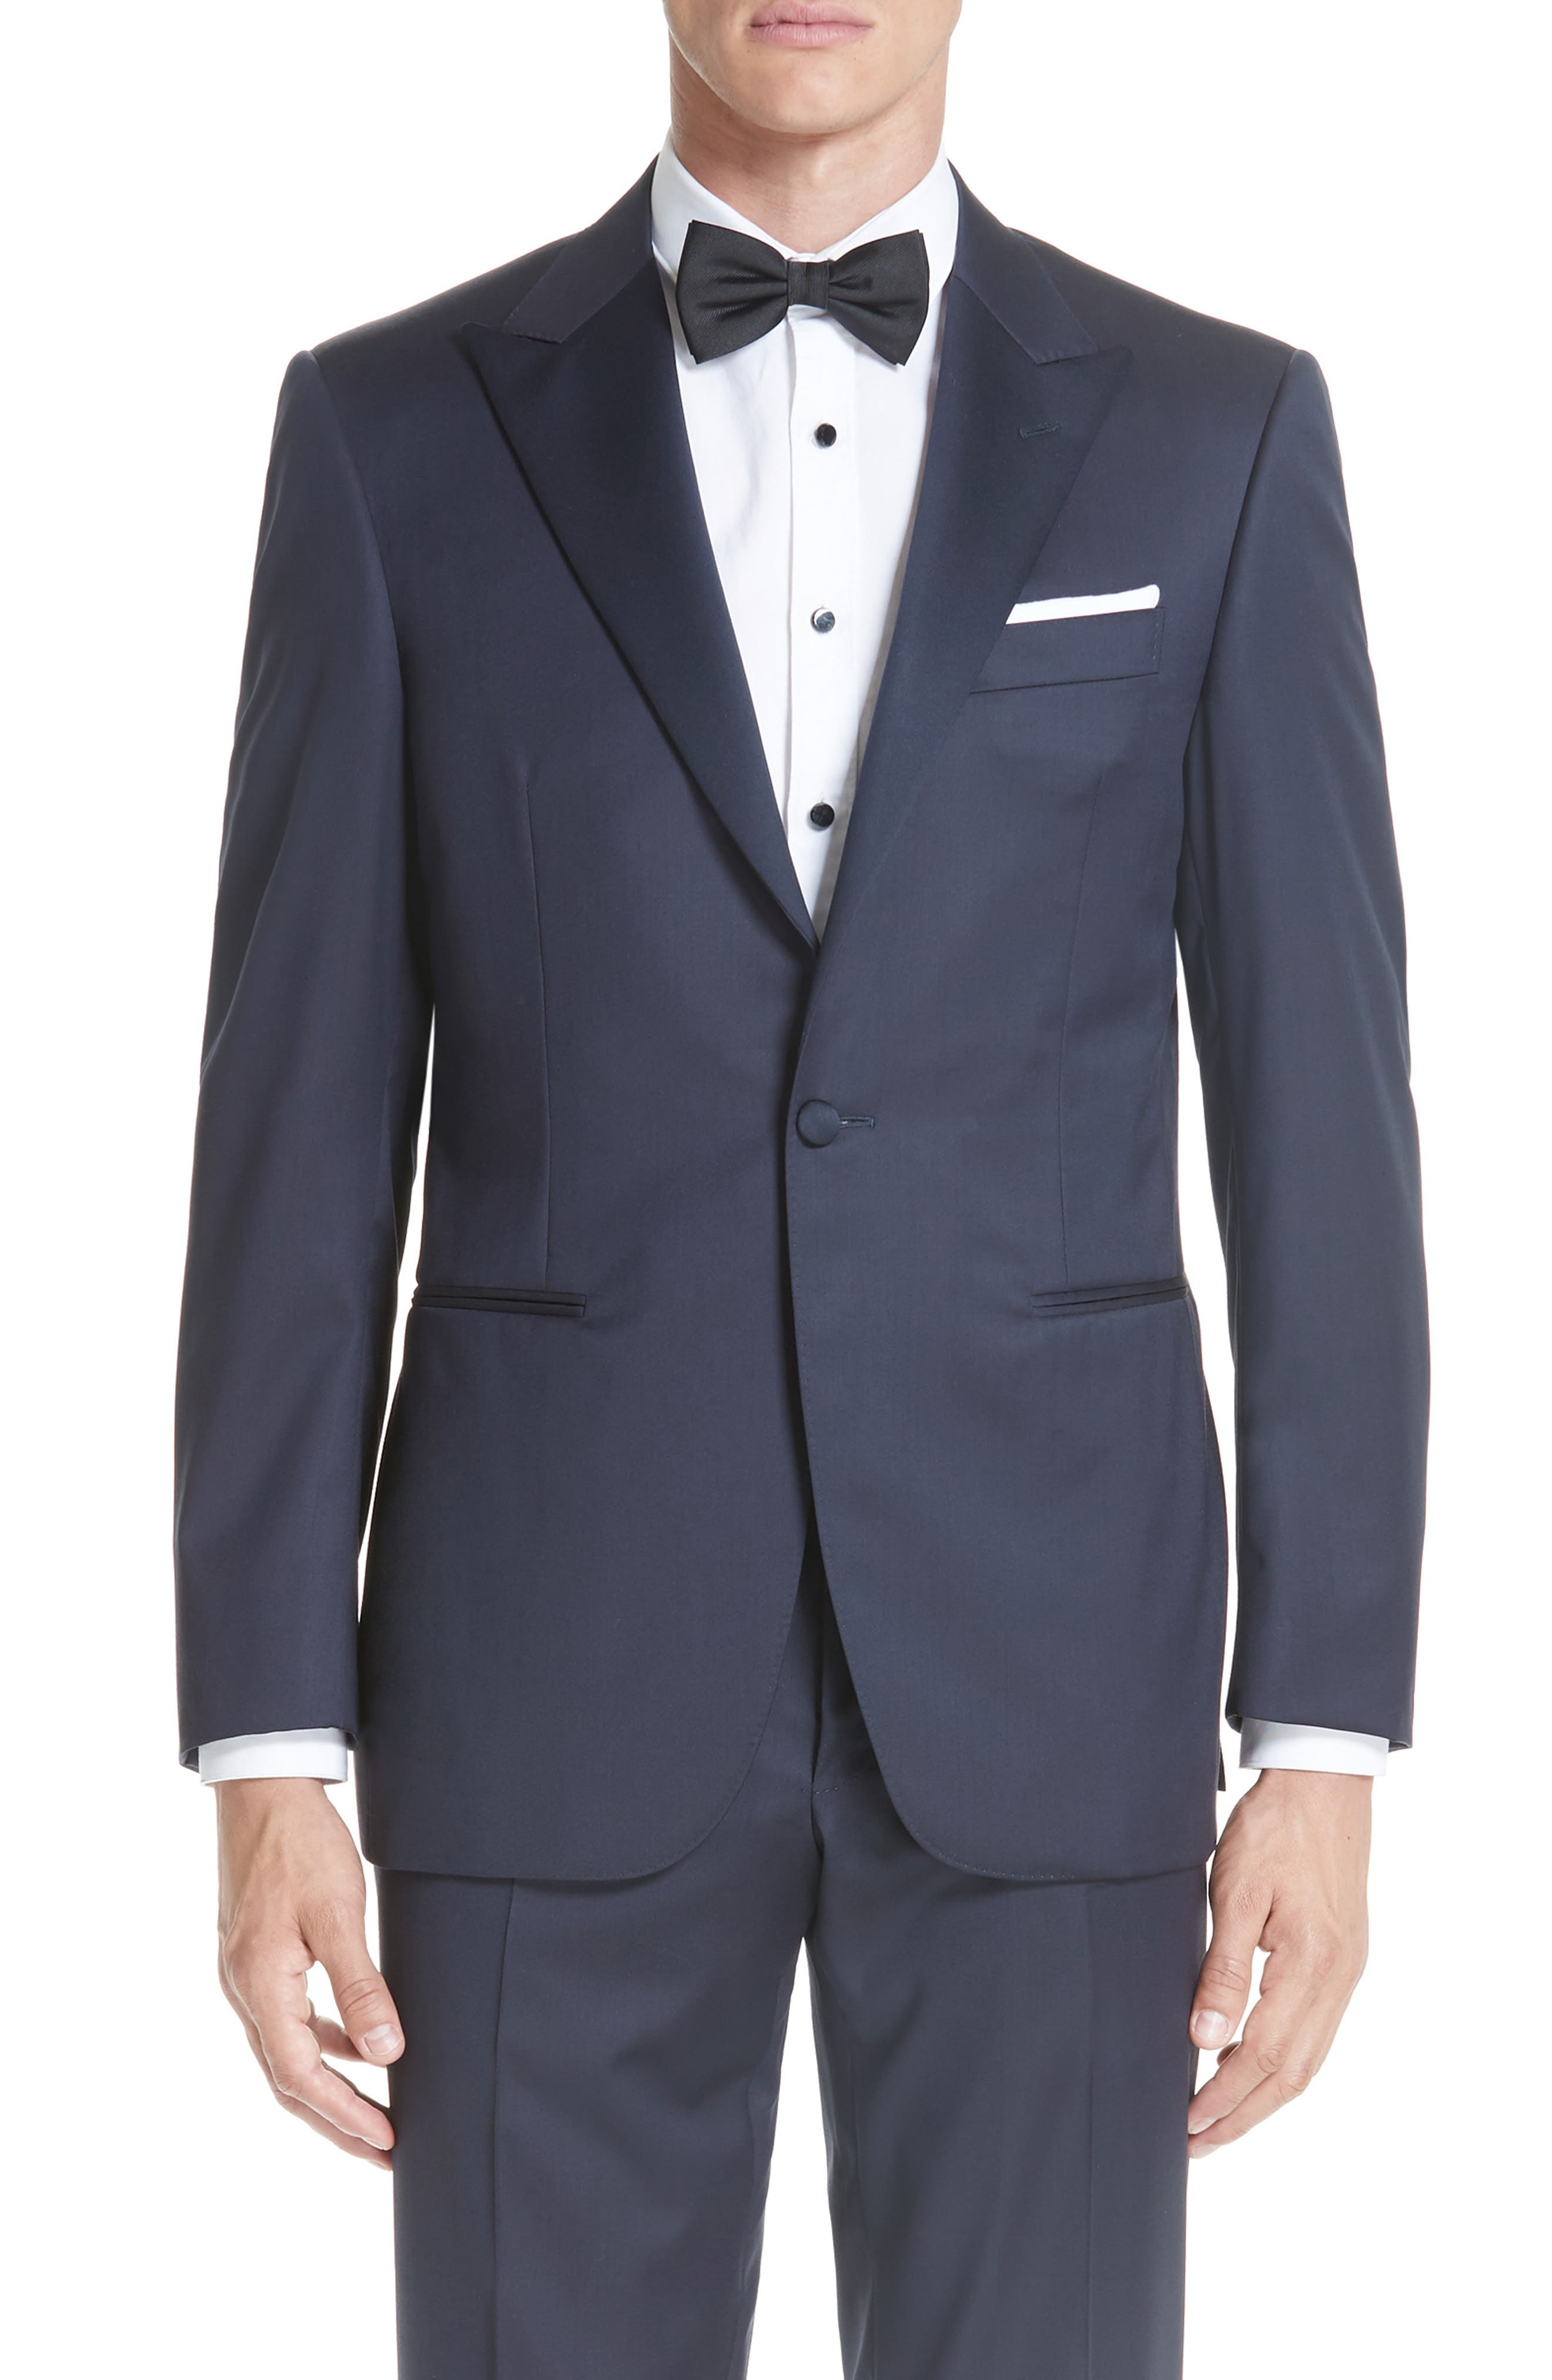 CANALI, Classic Fit Wool Tuxedo, Alternate thumbnail 5, color, NAVY